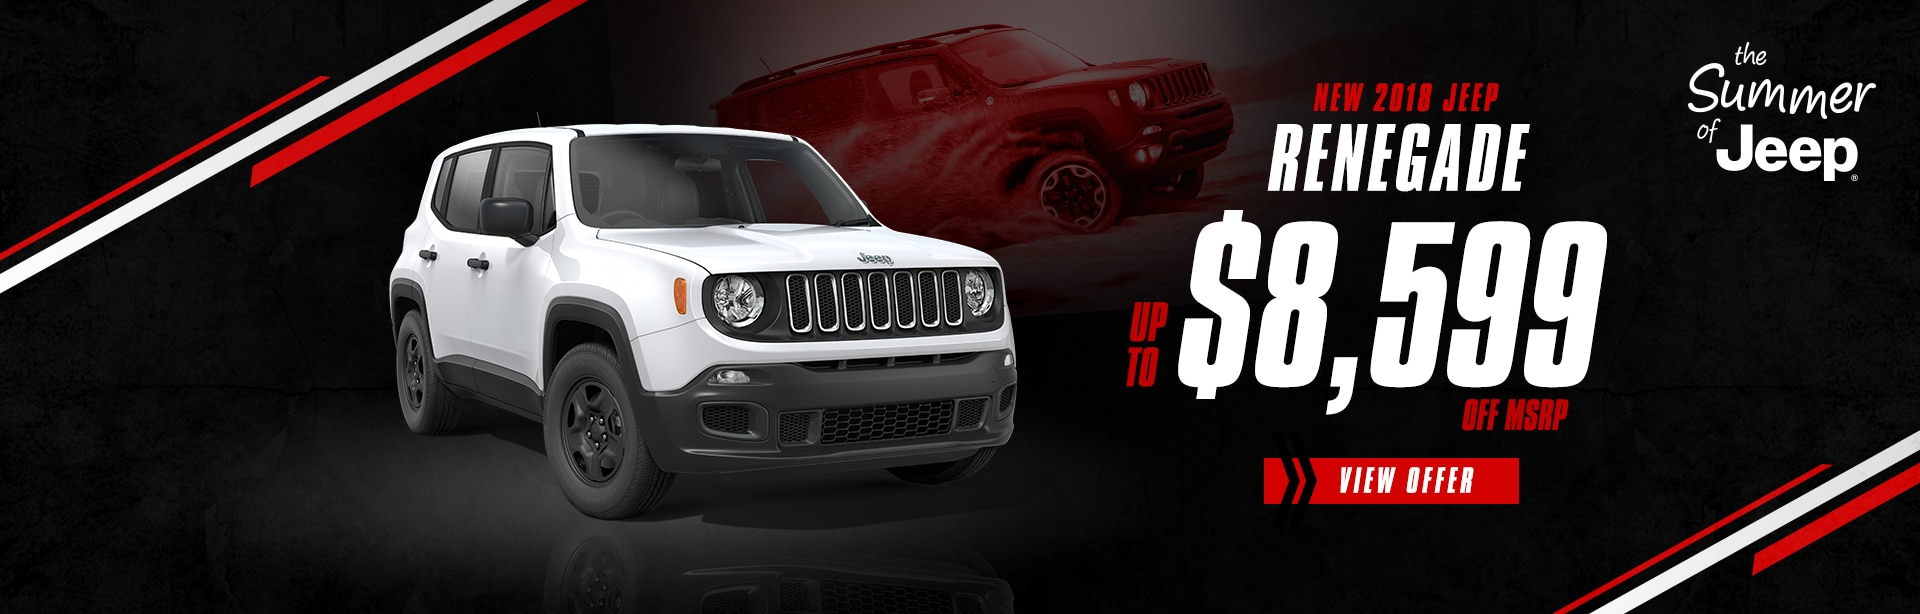 Premier Chrysler Dodge Jeep Ram | New Chrysler, Dodge, Jeep, Ram